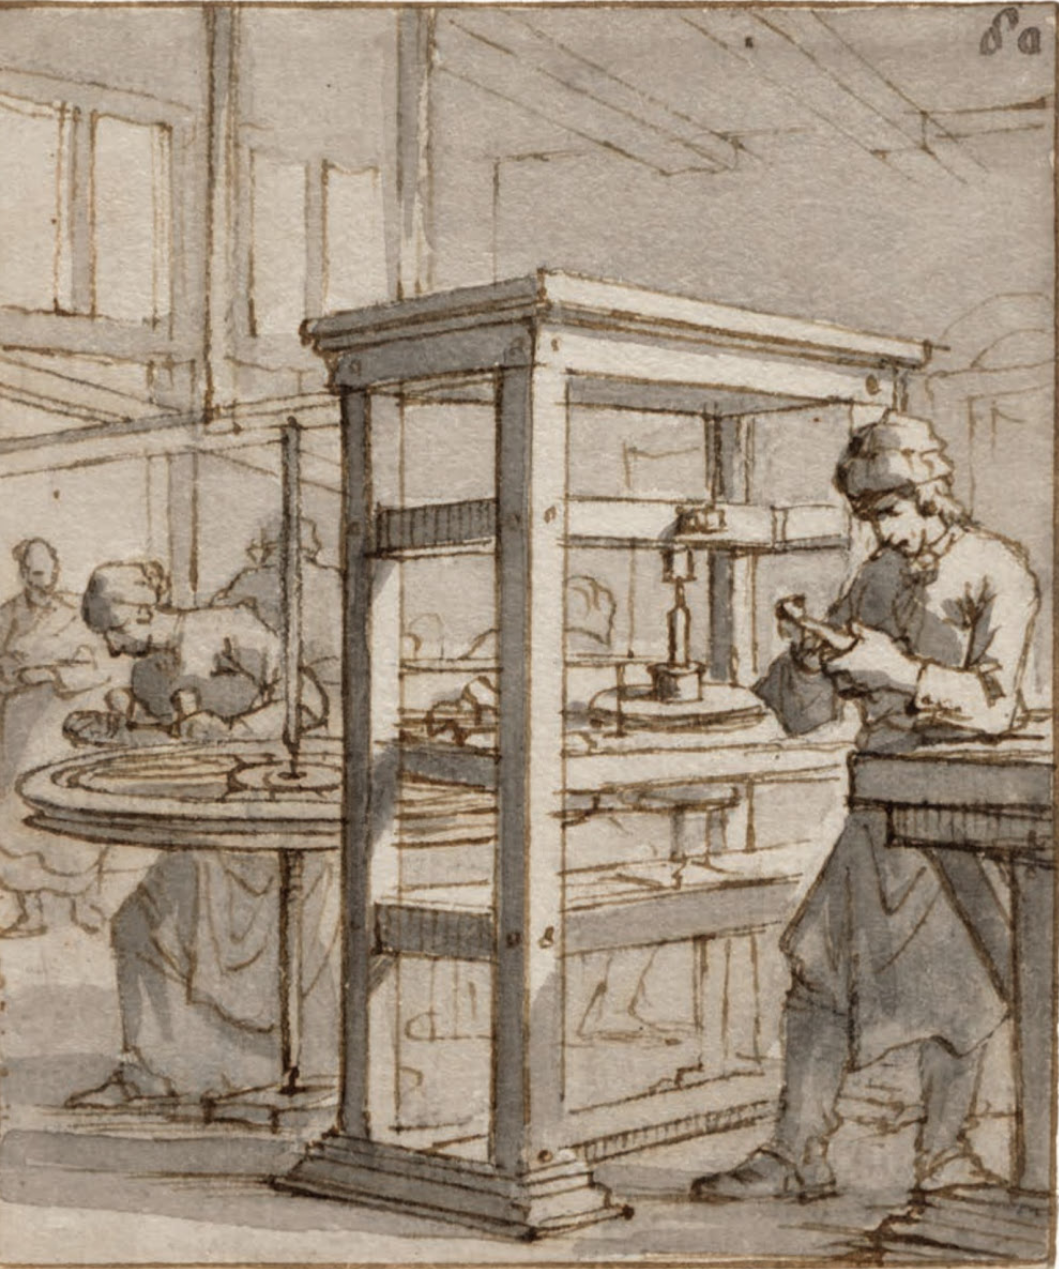 diamond cutting shop in amsterdam 1694